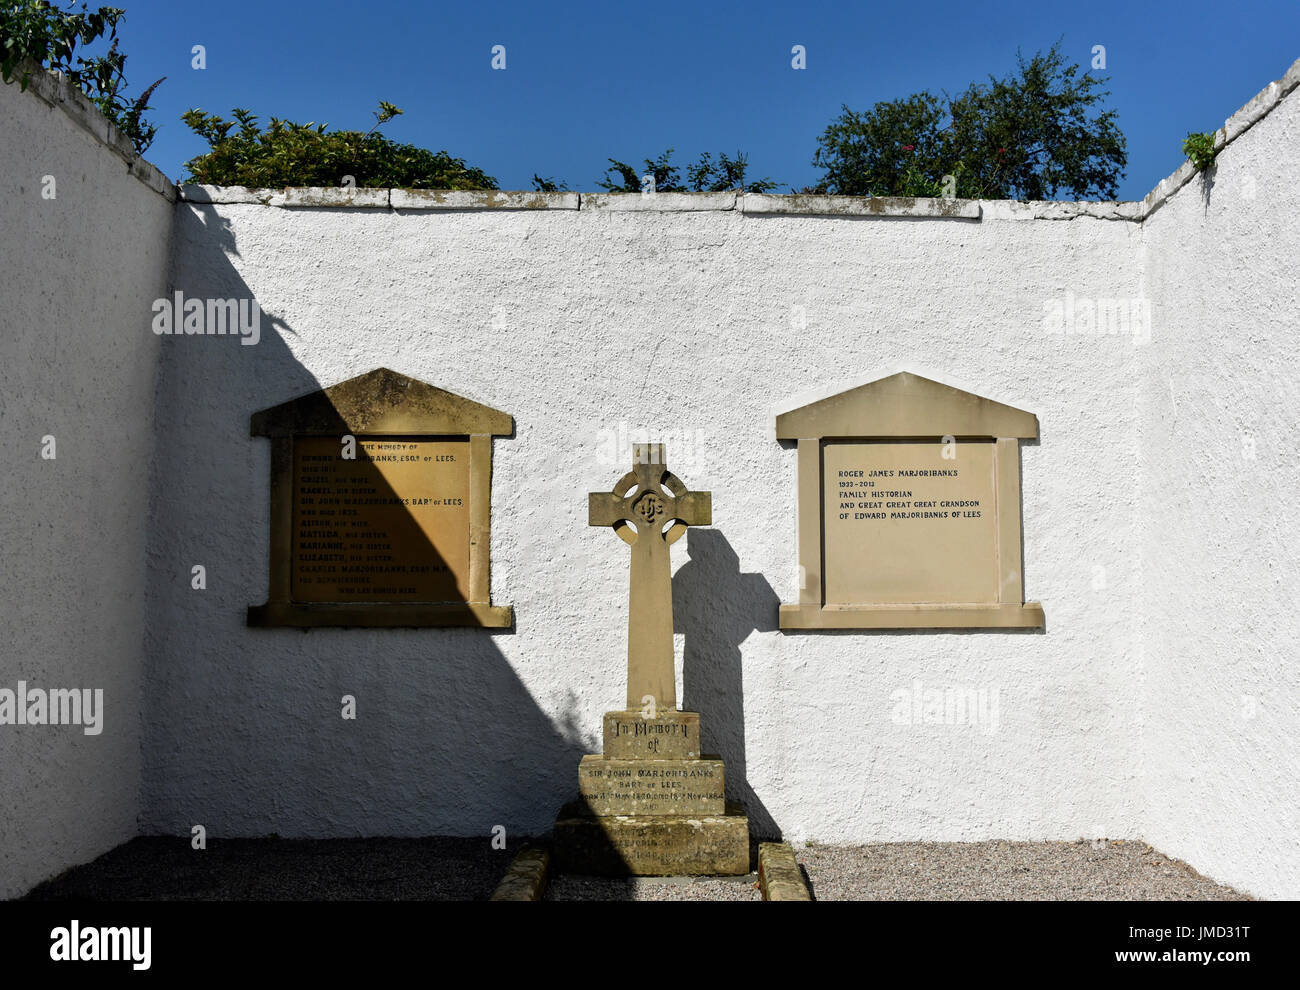 The Marjoriebanks Mausoleum. Coldstream. Scottish Borders, Berwickshire, Scotland, United Kingdom, Europe. Stock Photo